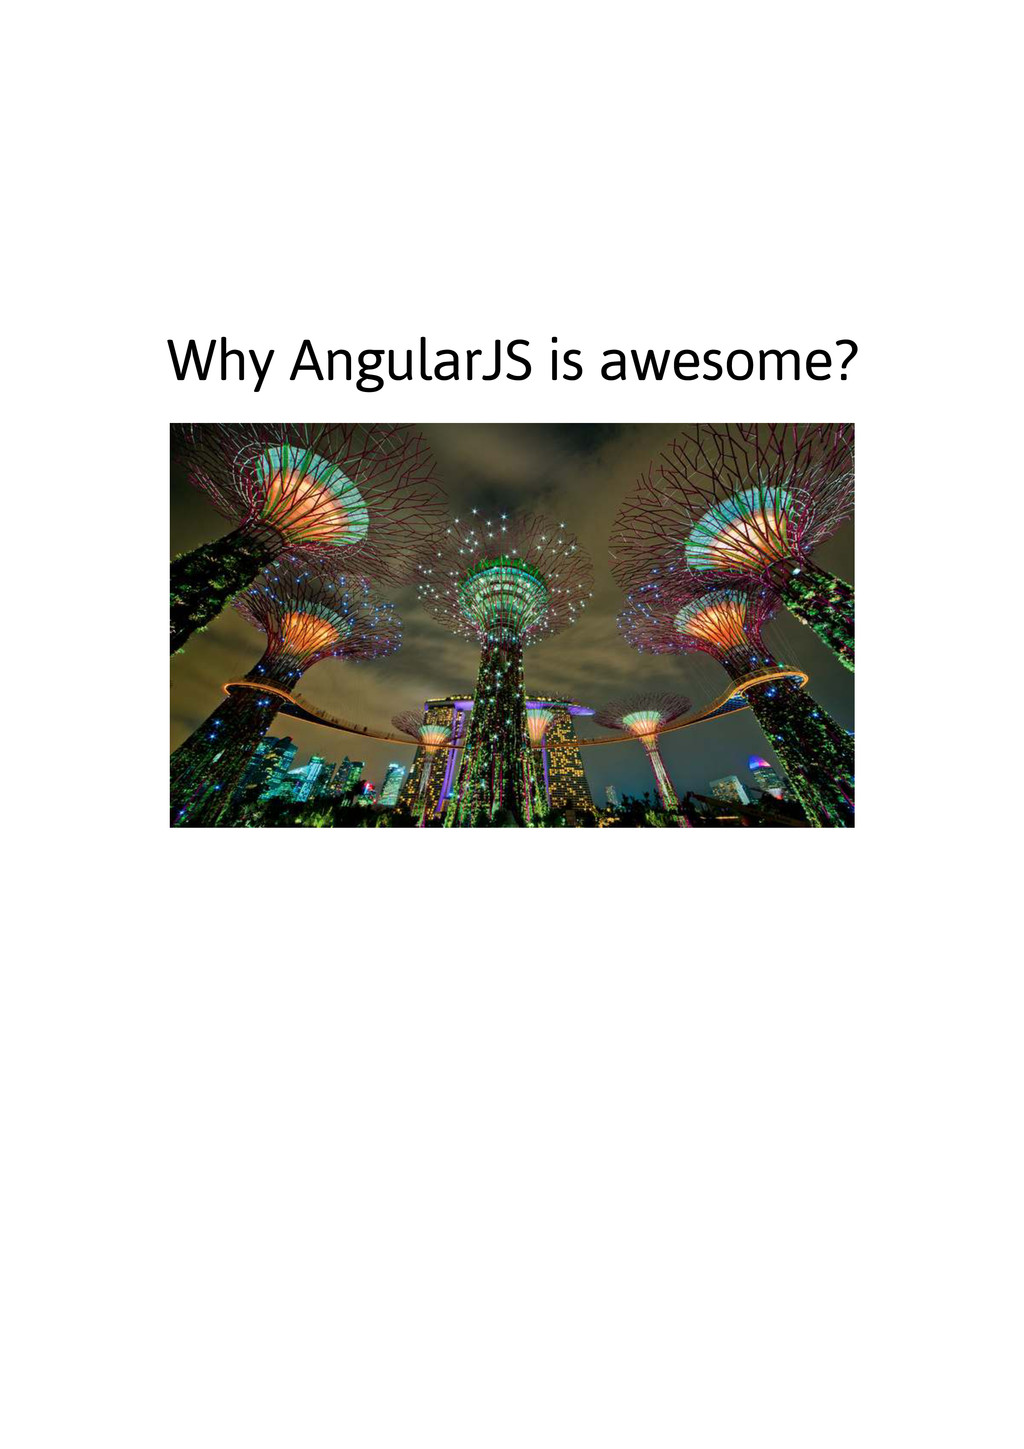 Why AngularJS is awesome?